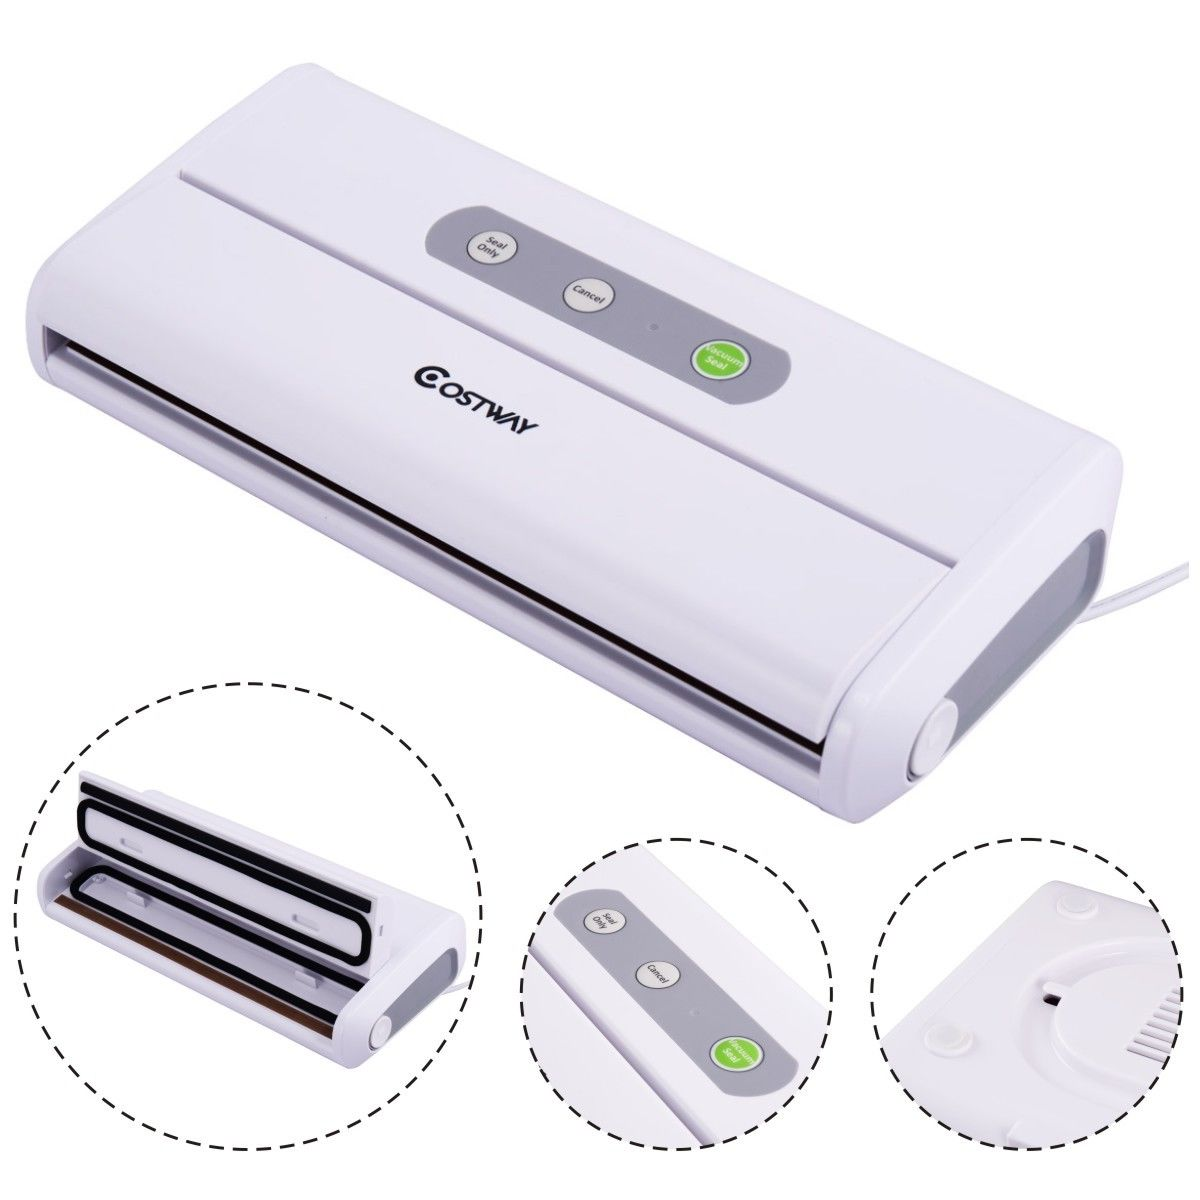 Click here to buy Costway Electric Food Packing Vacuum Sealer Machine Home Foodsaver Storage Meal Sealing by Costway.